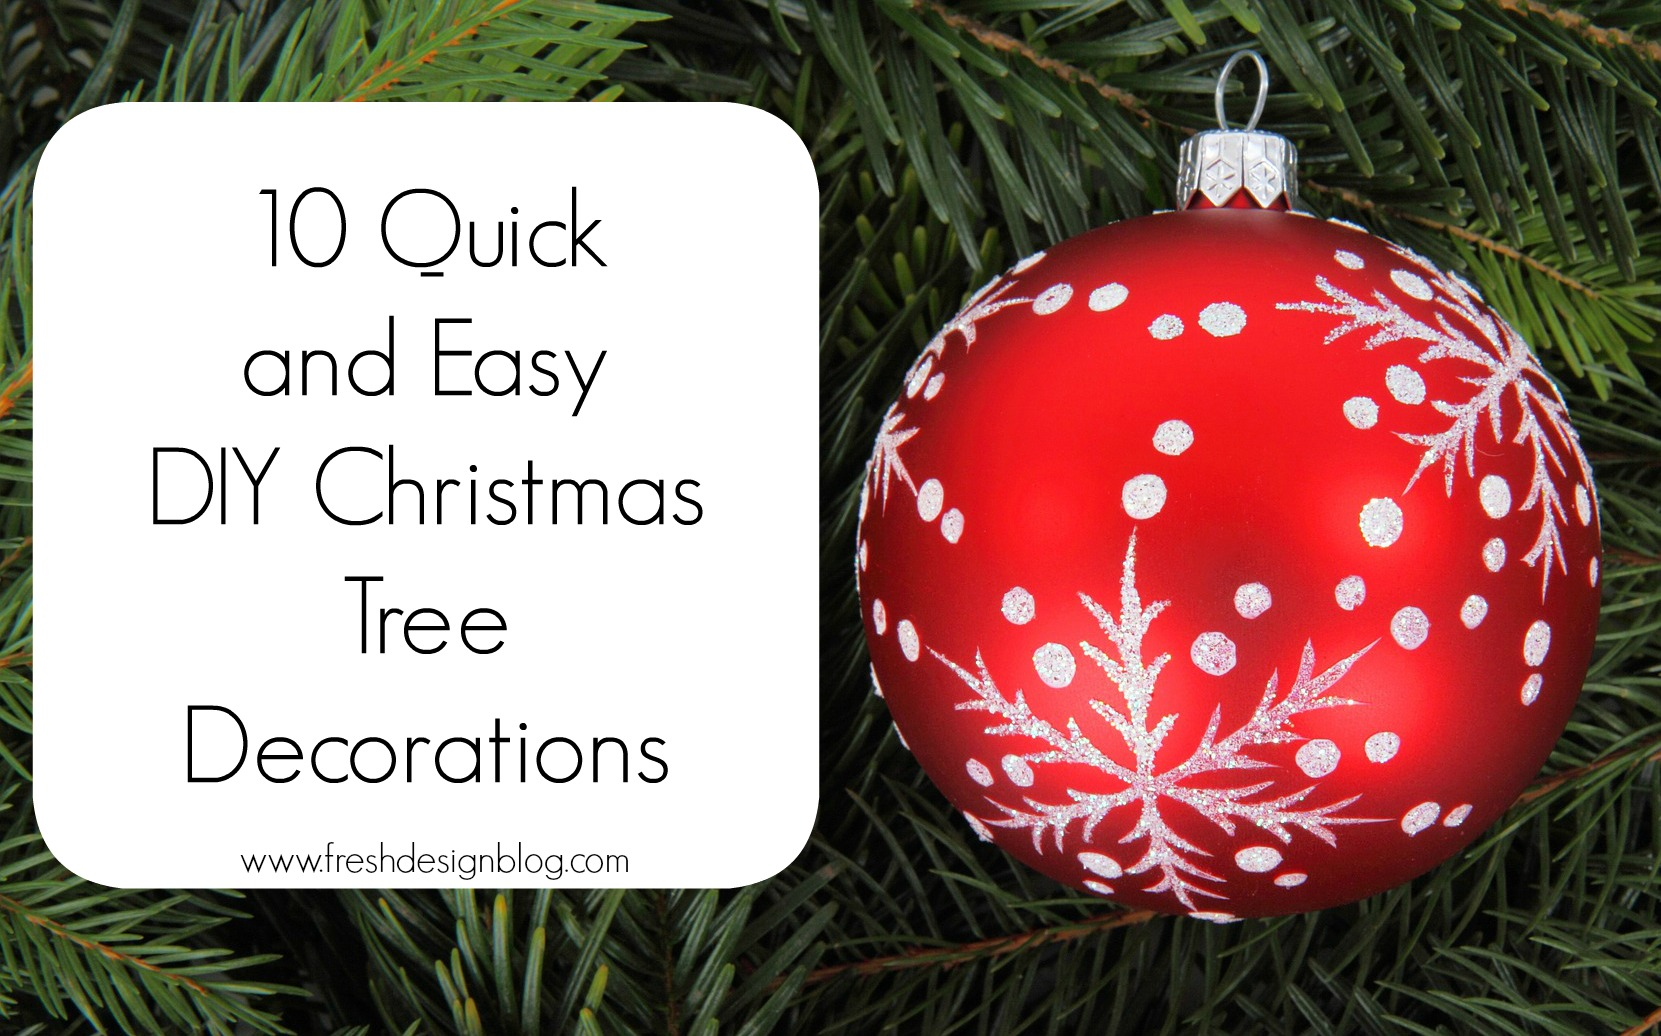 Christmas Decoration Ideas To Make : Quick and easy diy christmas tree decorations fresh